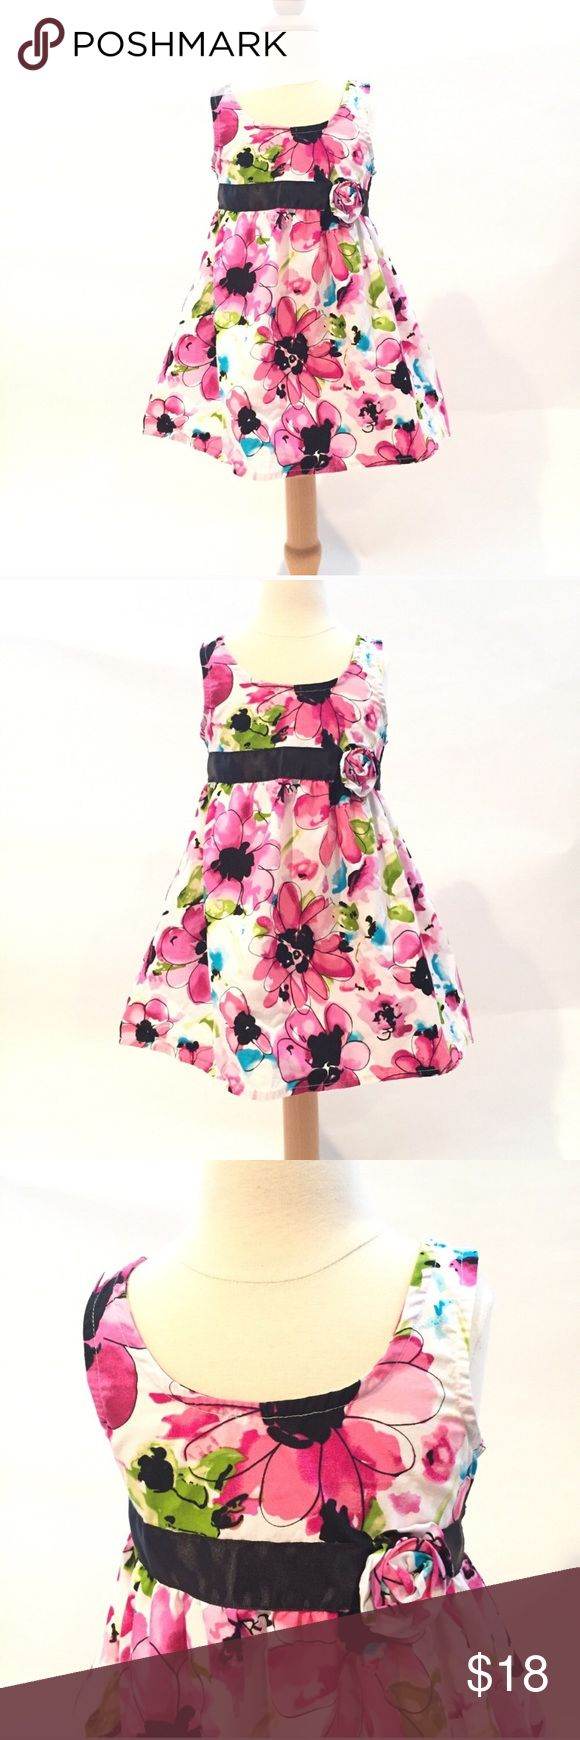 Pink Floral Dress Sz 3T fancy church special dress Pink Floral Dress by Pinky. Size 3T runs a tad bit short, better for a petite 3T. EUC. Lined and has a bit of tulle for extra pouf at the bottom. Special Occasion dress. Church dress. Fancy dress. Pinky Dresses Formal